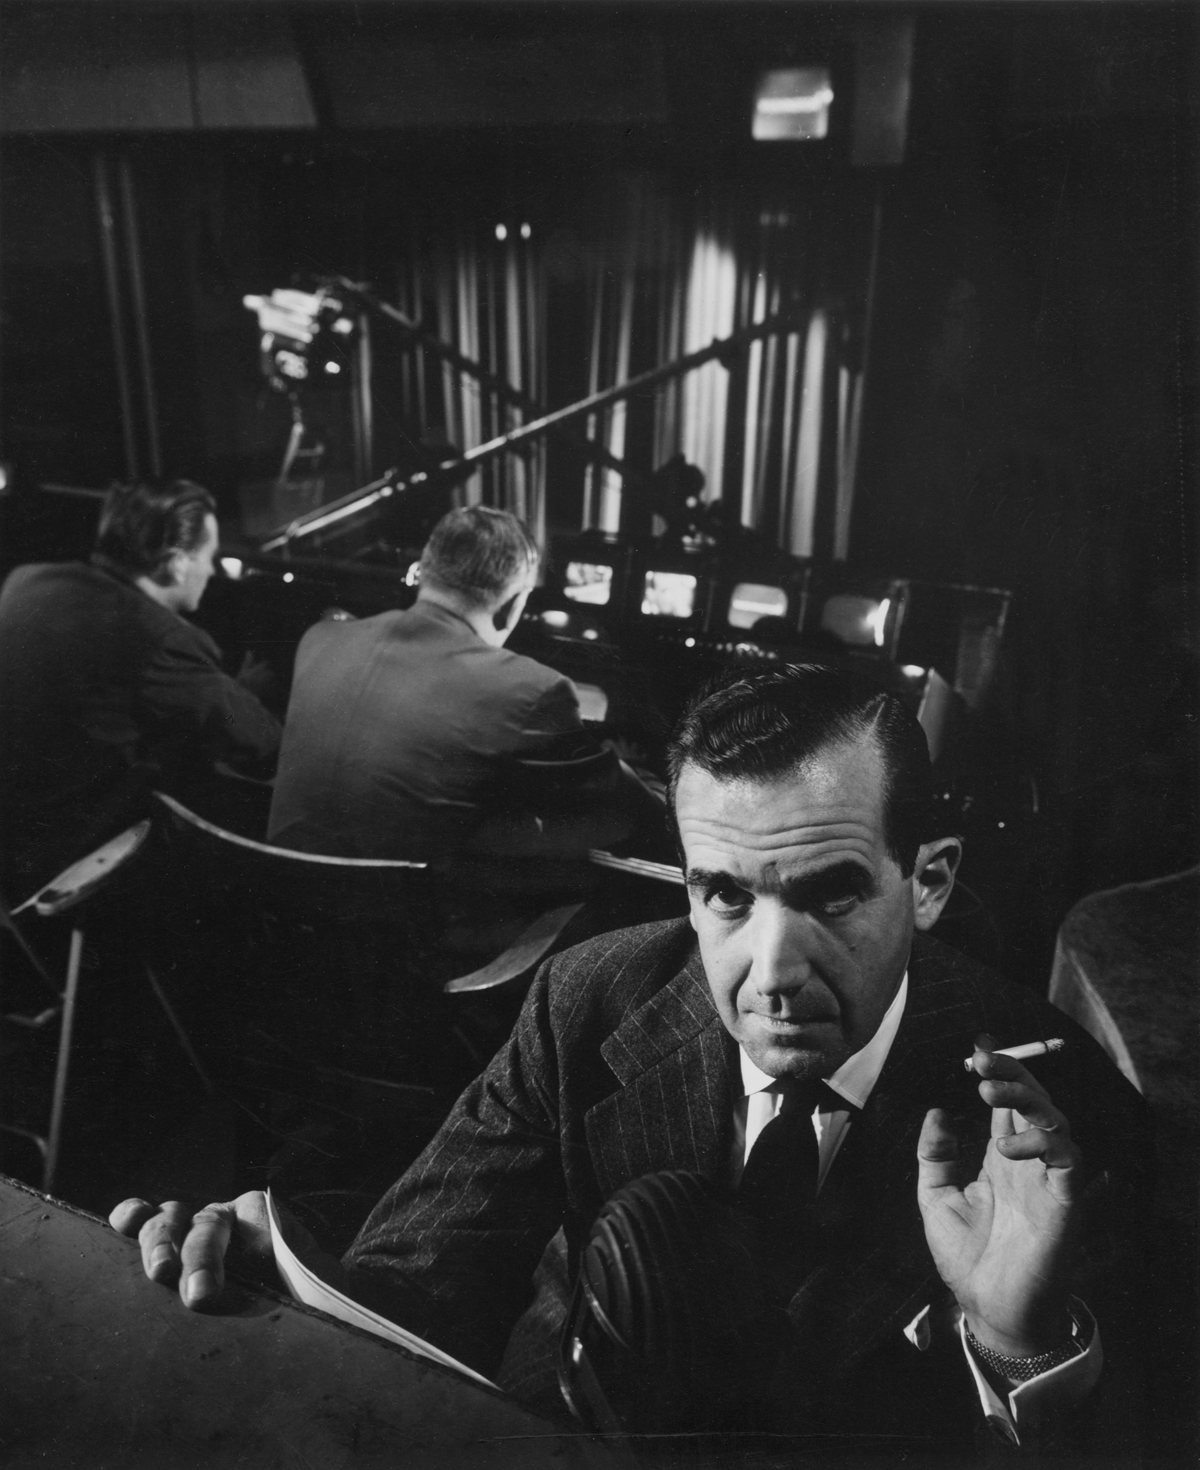 American newscaster Edward R. Murrow at CBS Studios, New York City, 1951